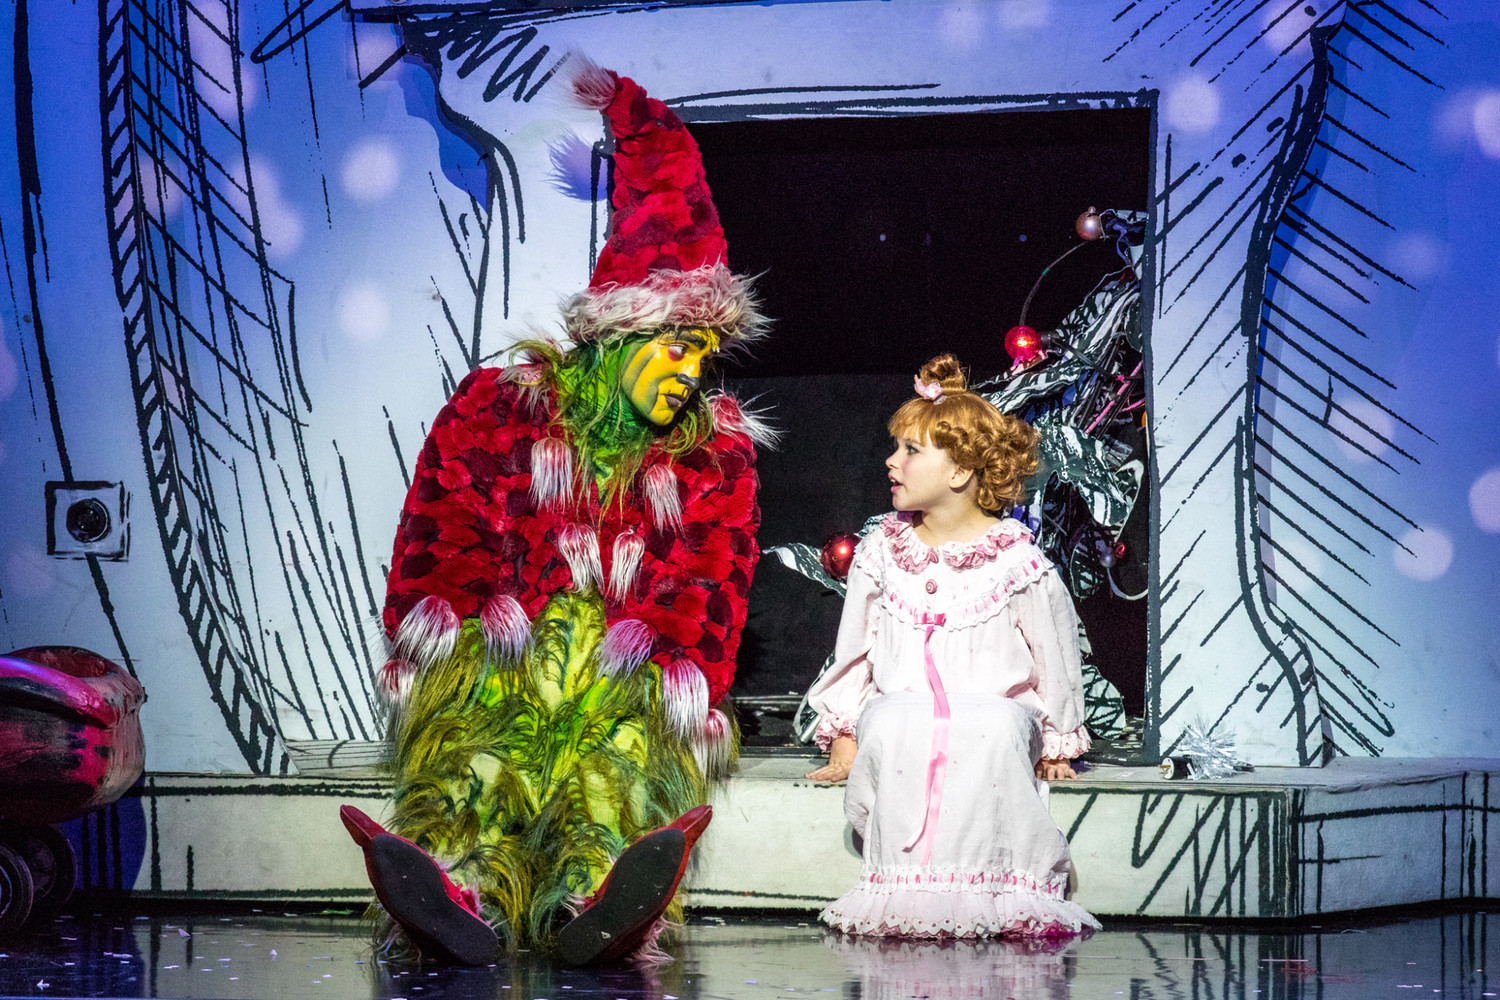 BWW Review: HOW THE GRINCH STOLE CHRISTMAS: THE MUSICAL Steals Hearts at Old National Centre